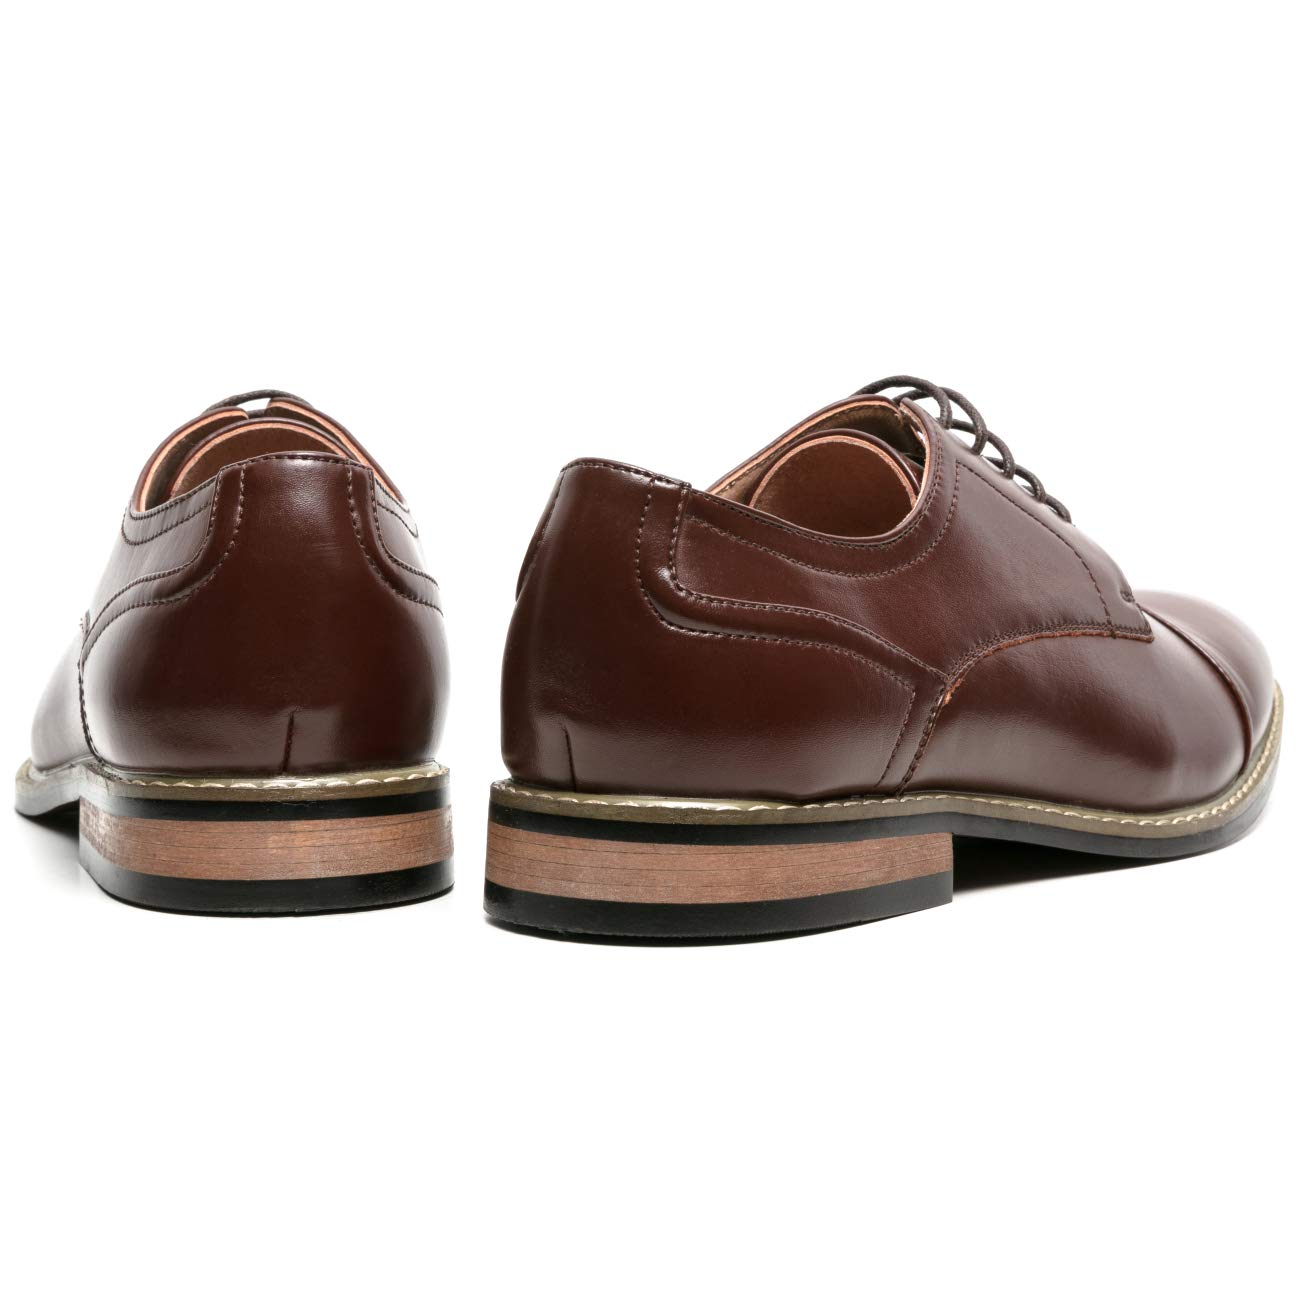 ZRIANG Mens Classic Cap Toe Lace-up Oxford Dress Shoes